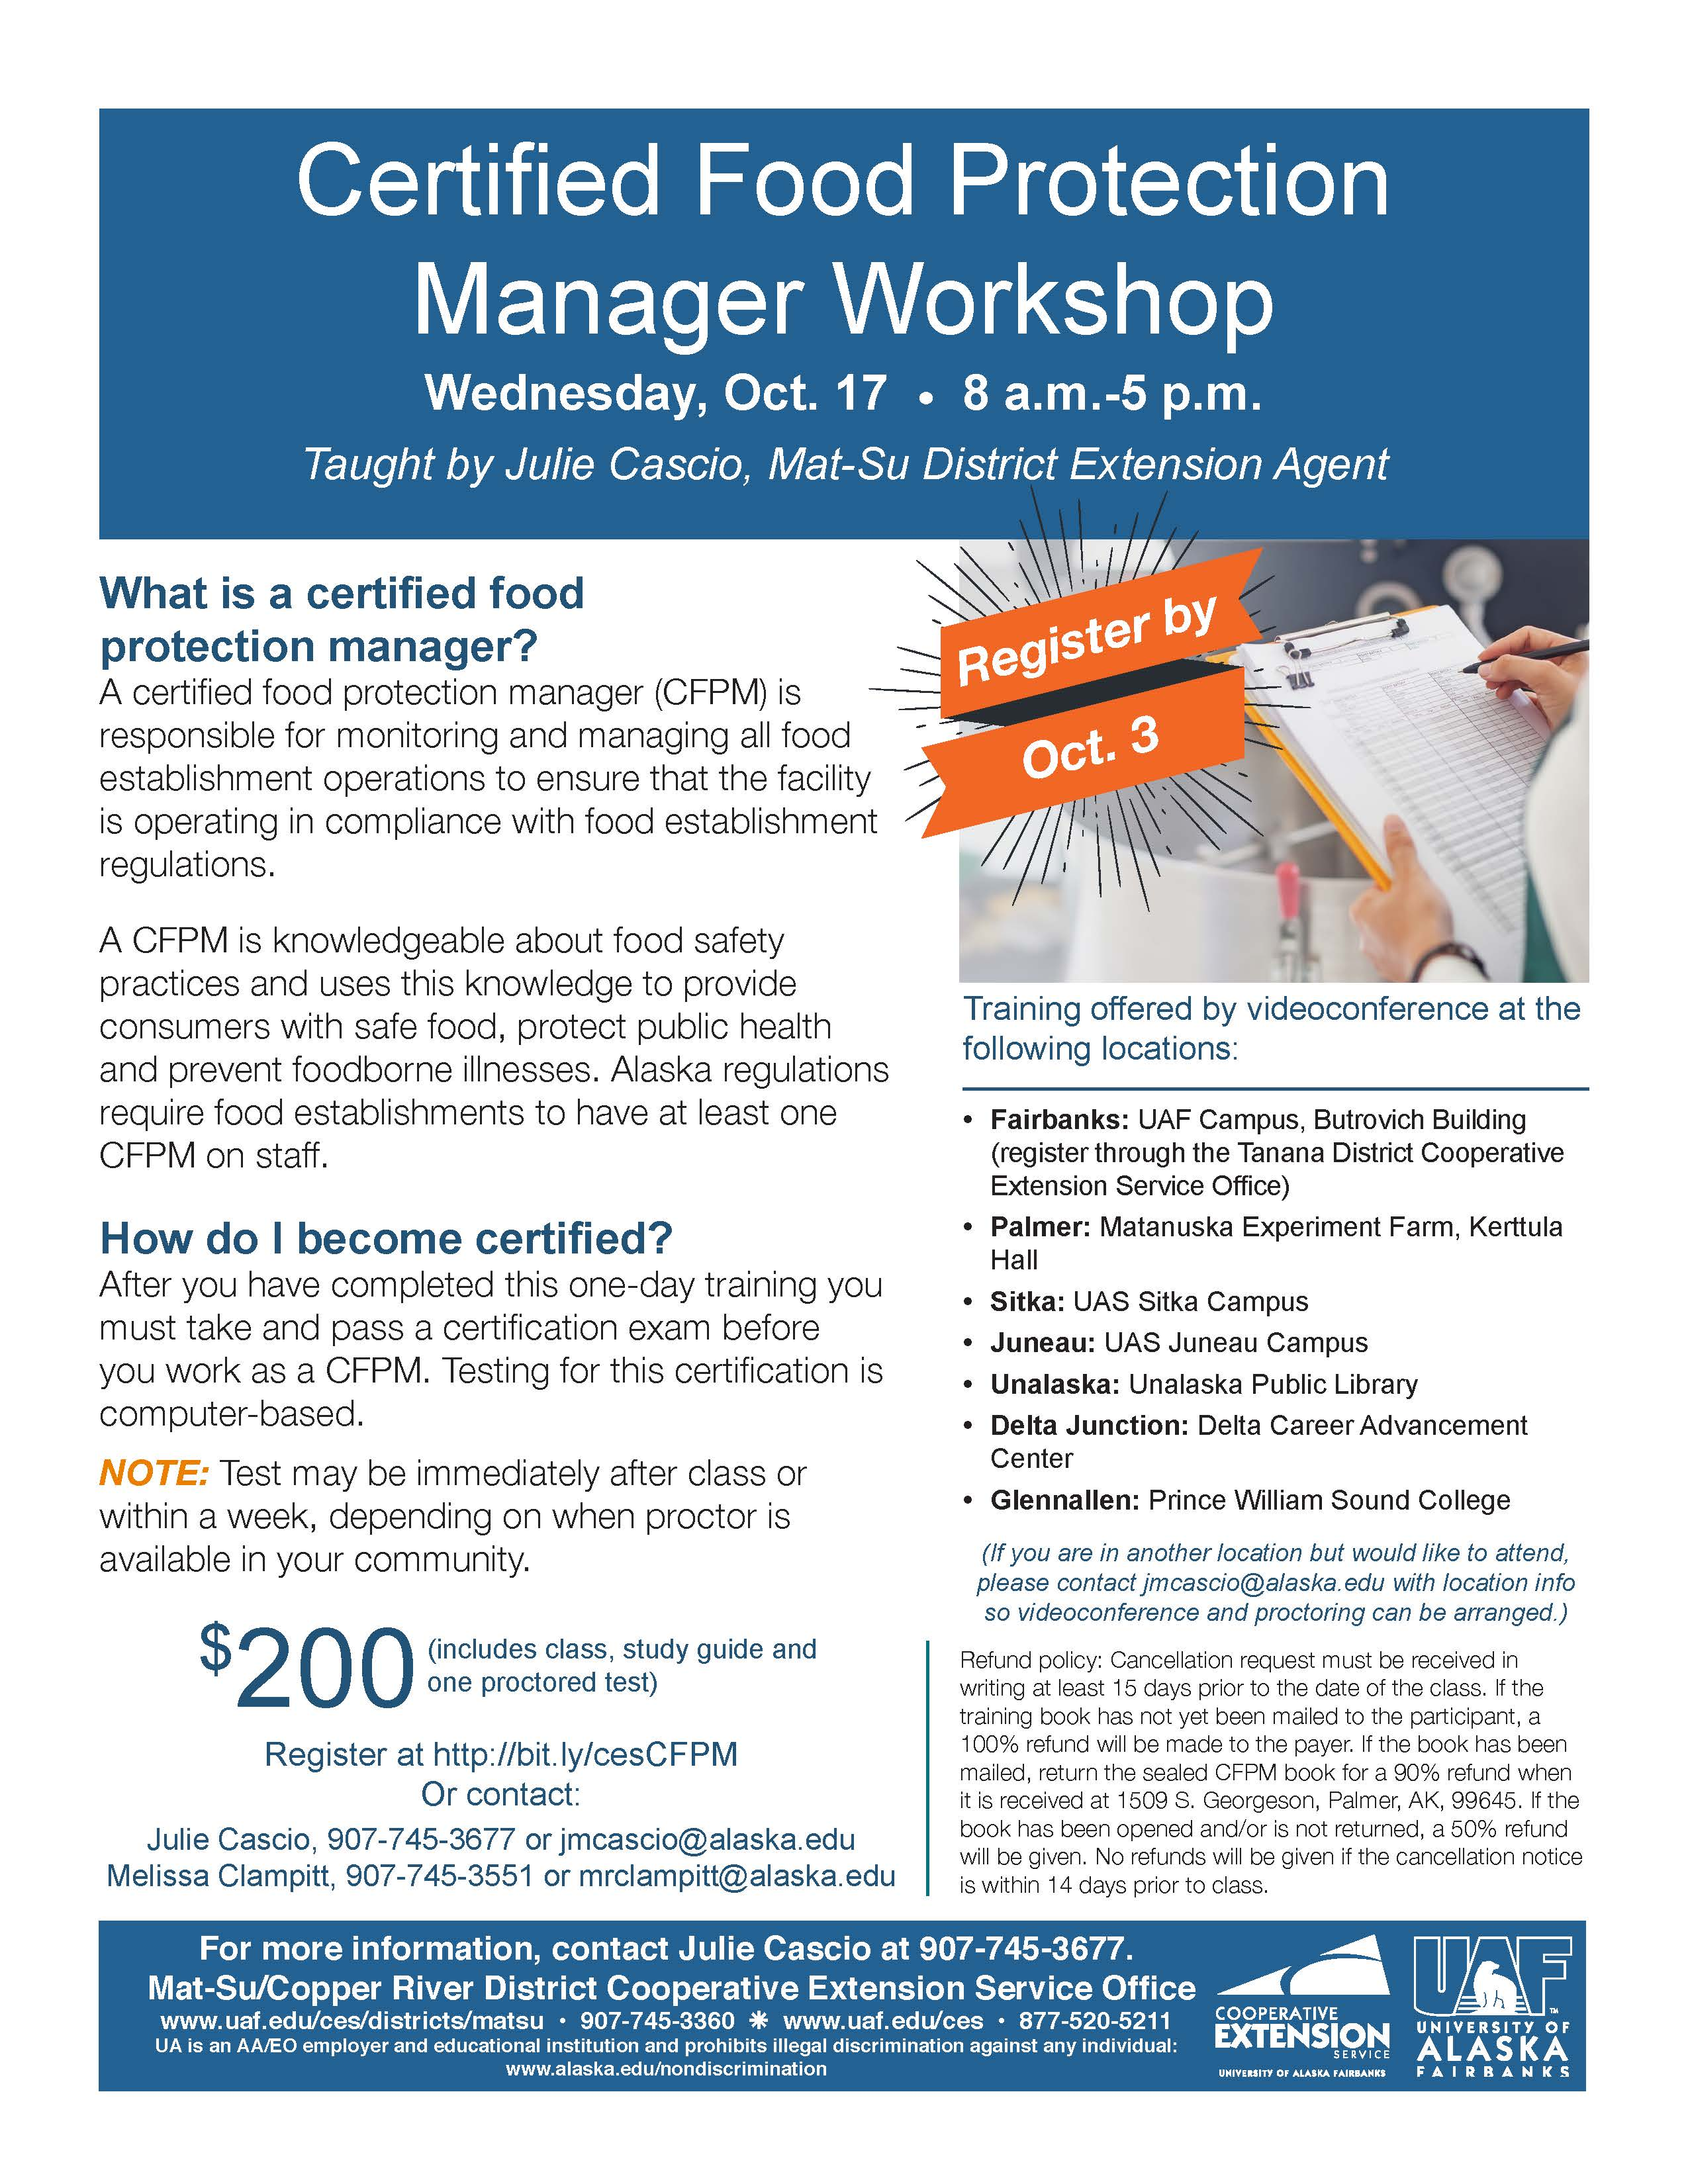 UAF Cooperative Extension Service offers Certified Food Protection Manager  class by videoconference Oct. 17 in Sitka – Sitka Local Foods Network